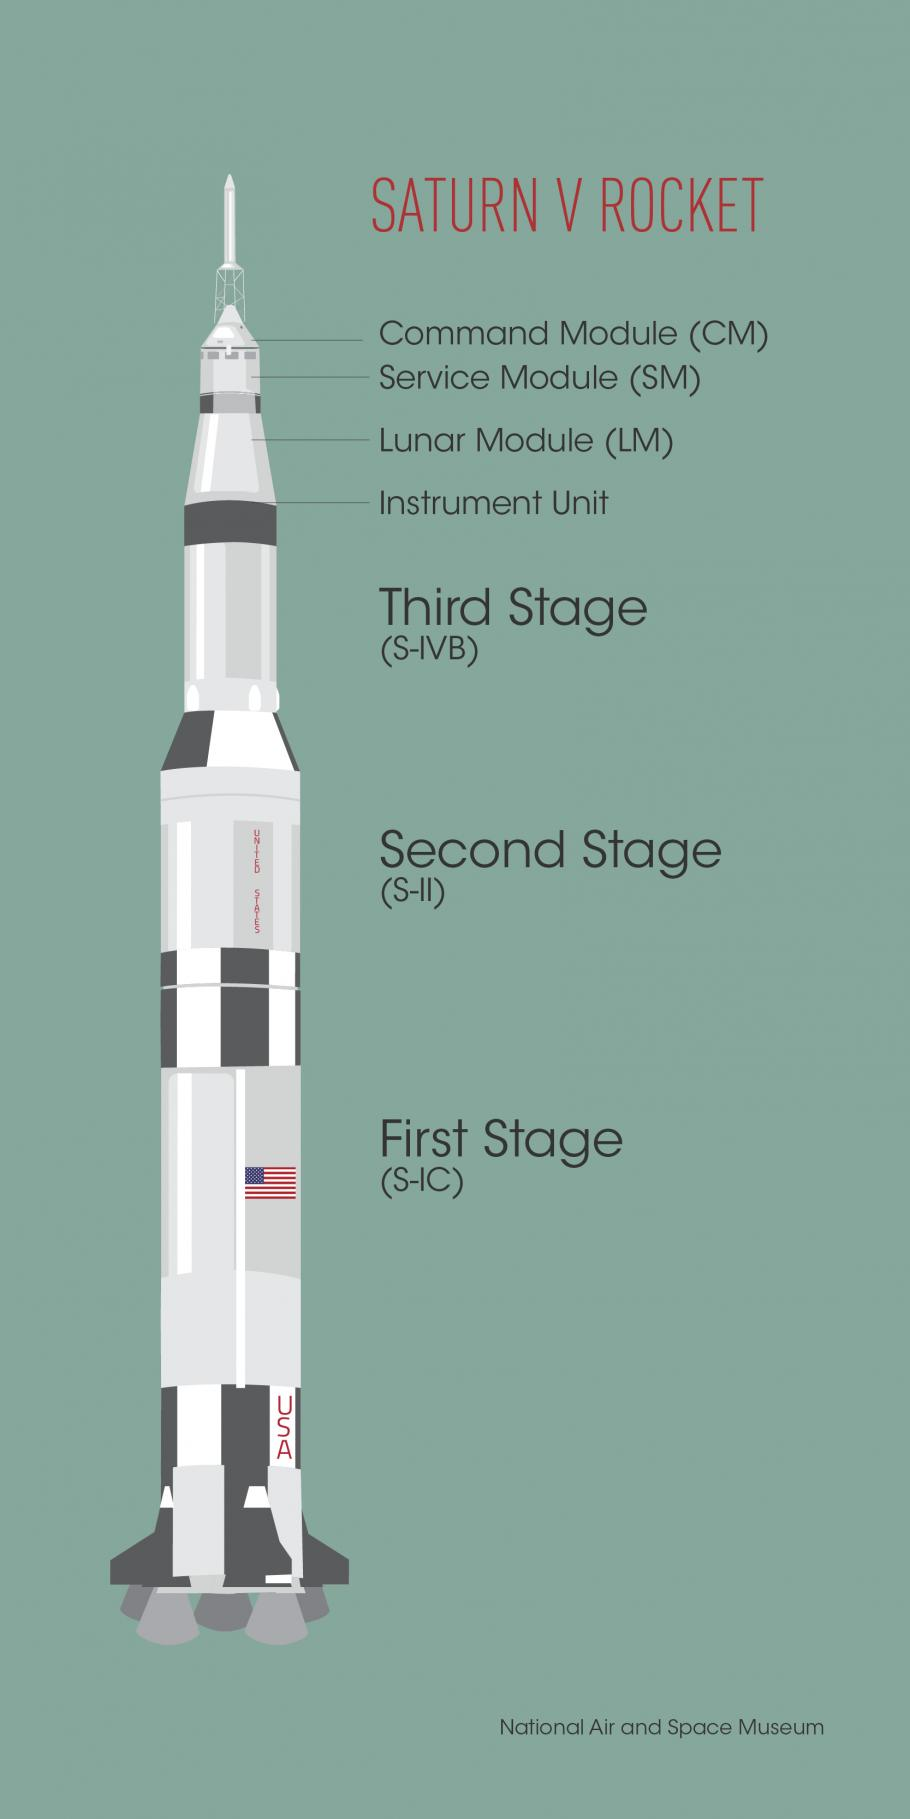 The components of the Saturn V rocket